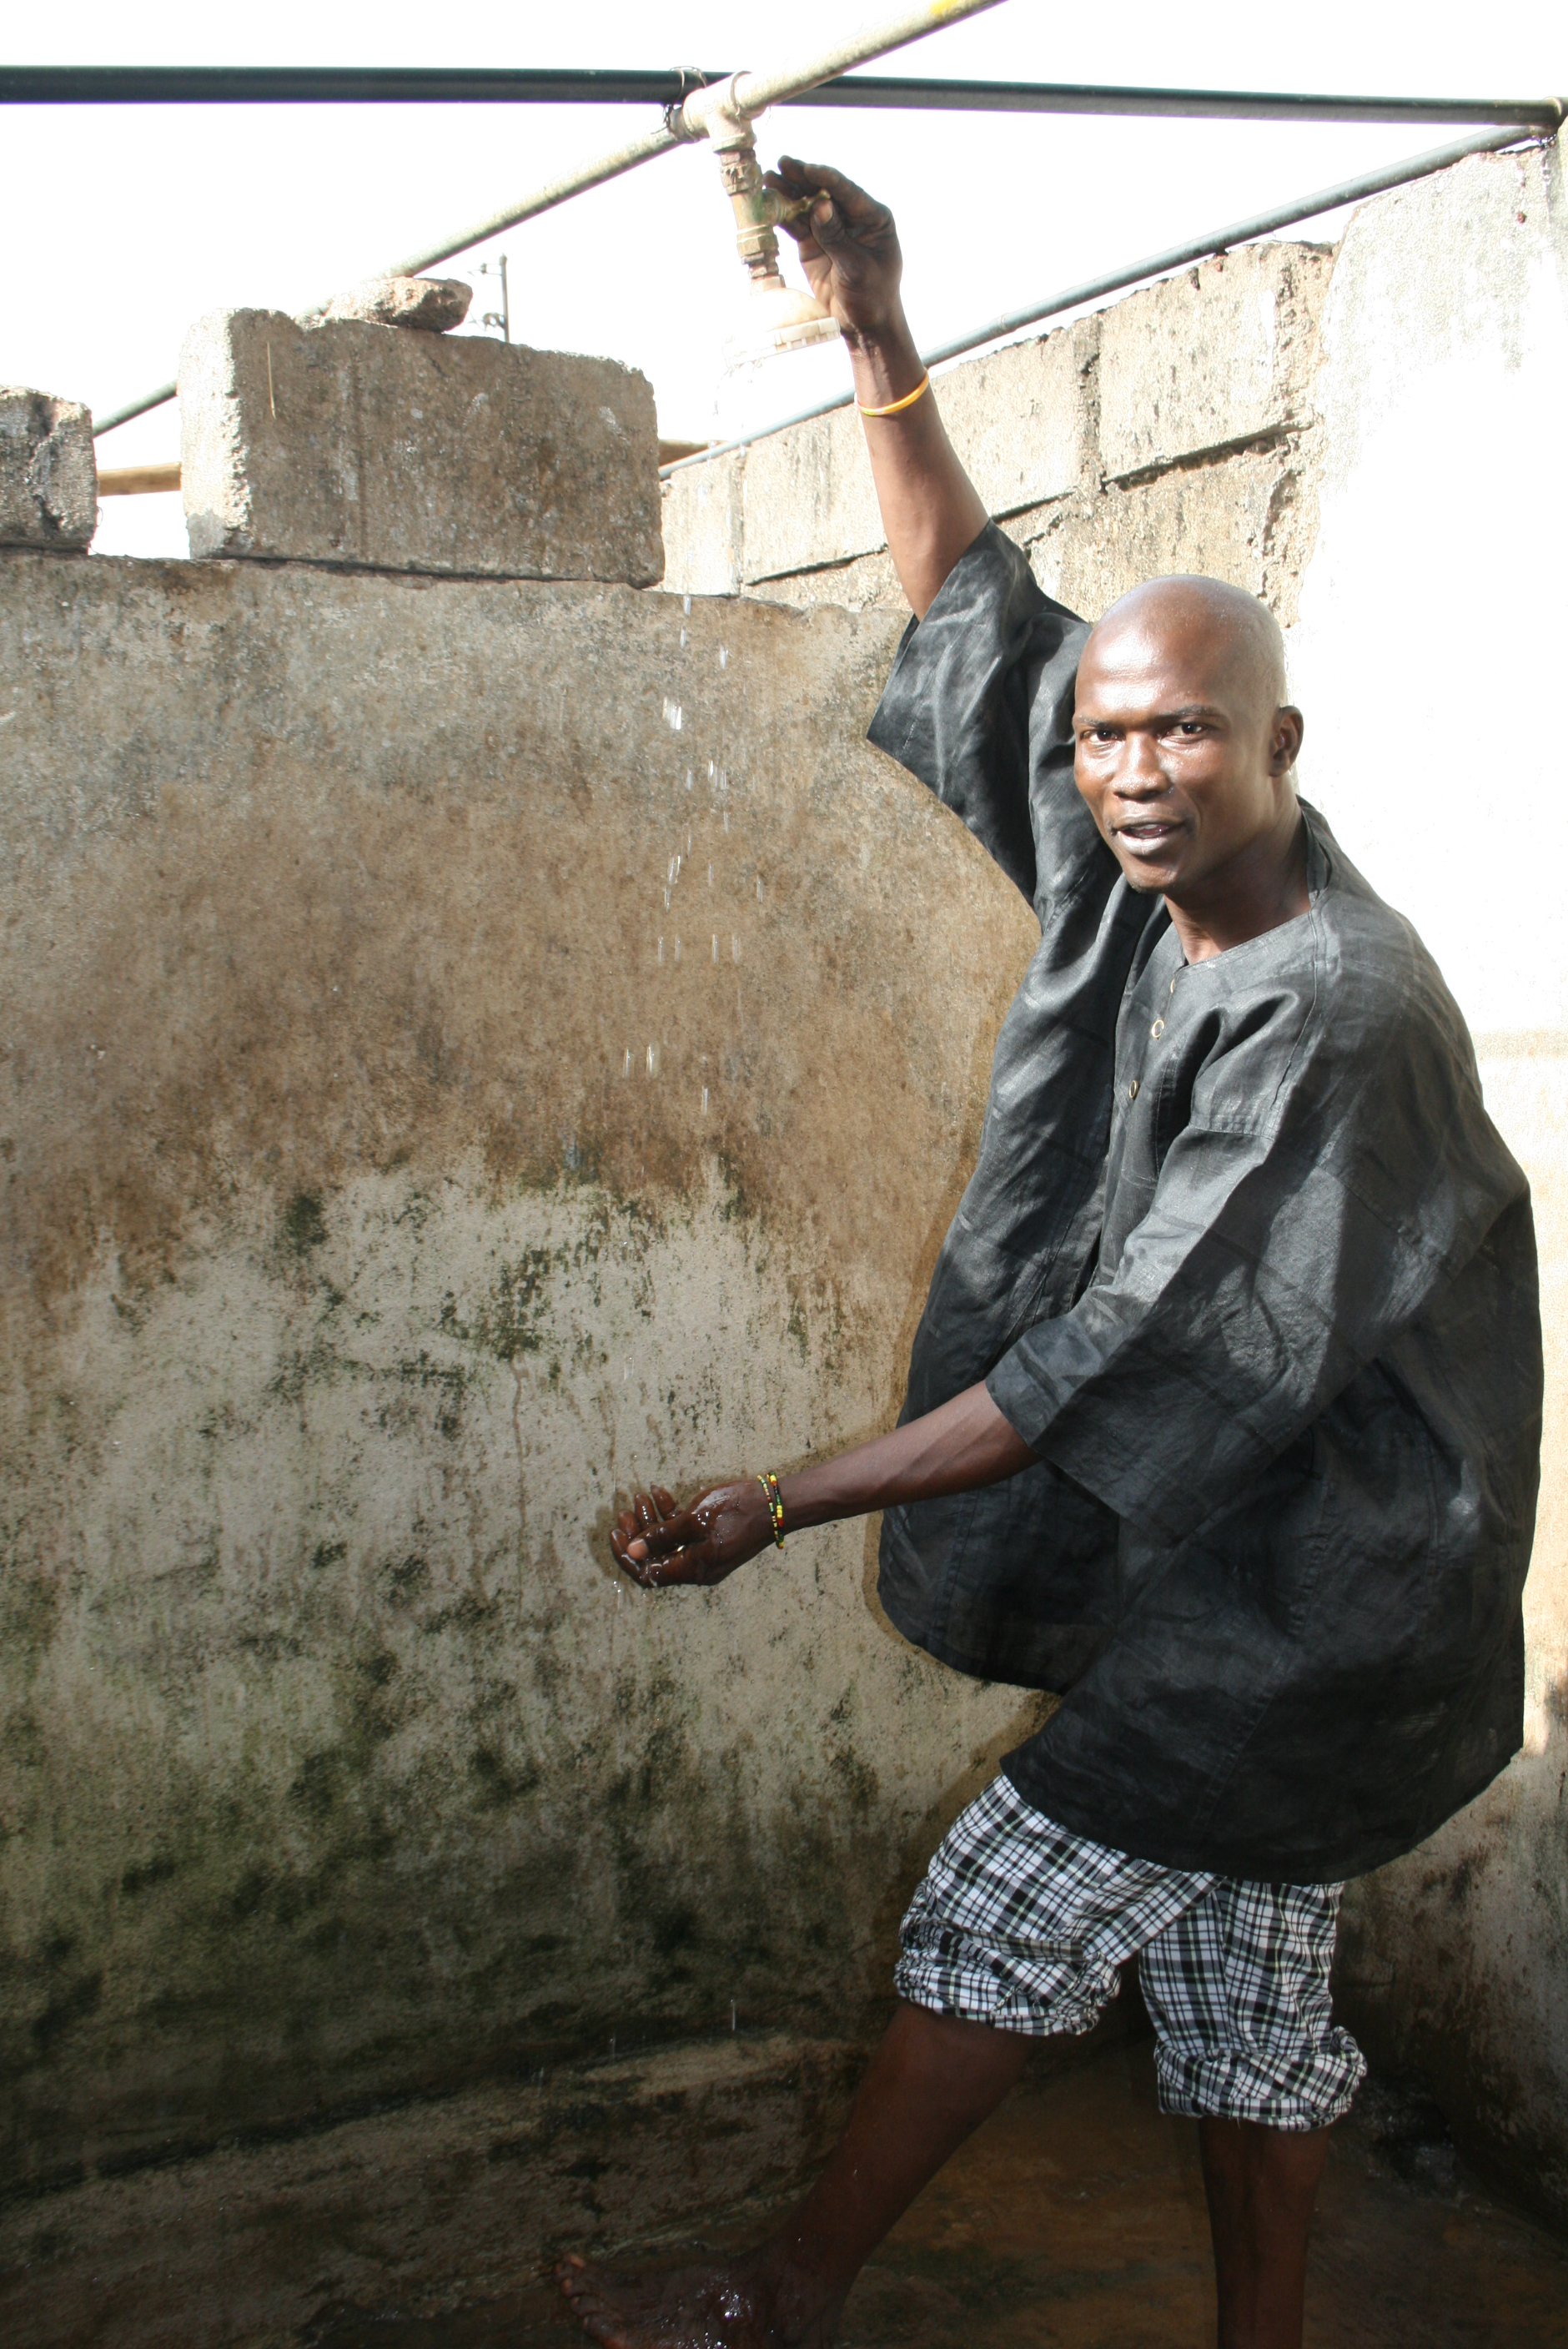 Sidiki Mansark runs the Water Sie Boys, a cooperative that set up public showers in Kroo Bay slum in Freetown